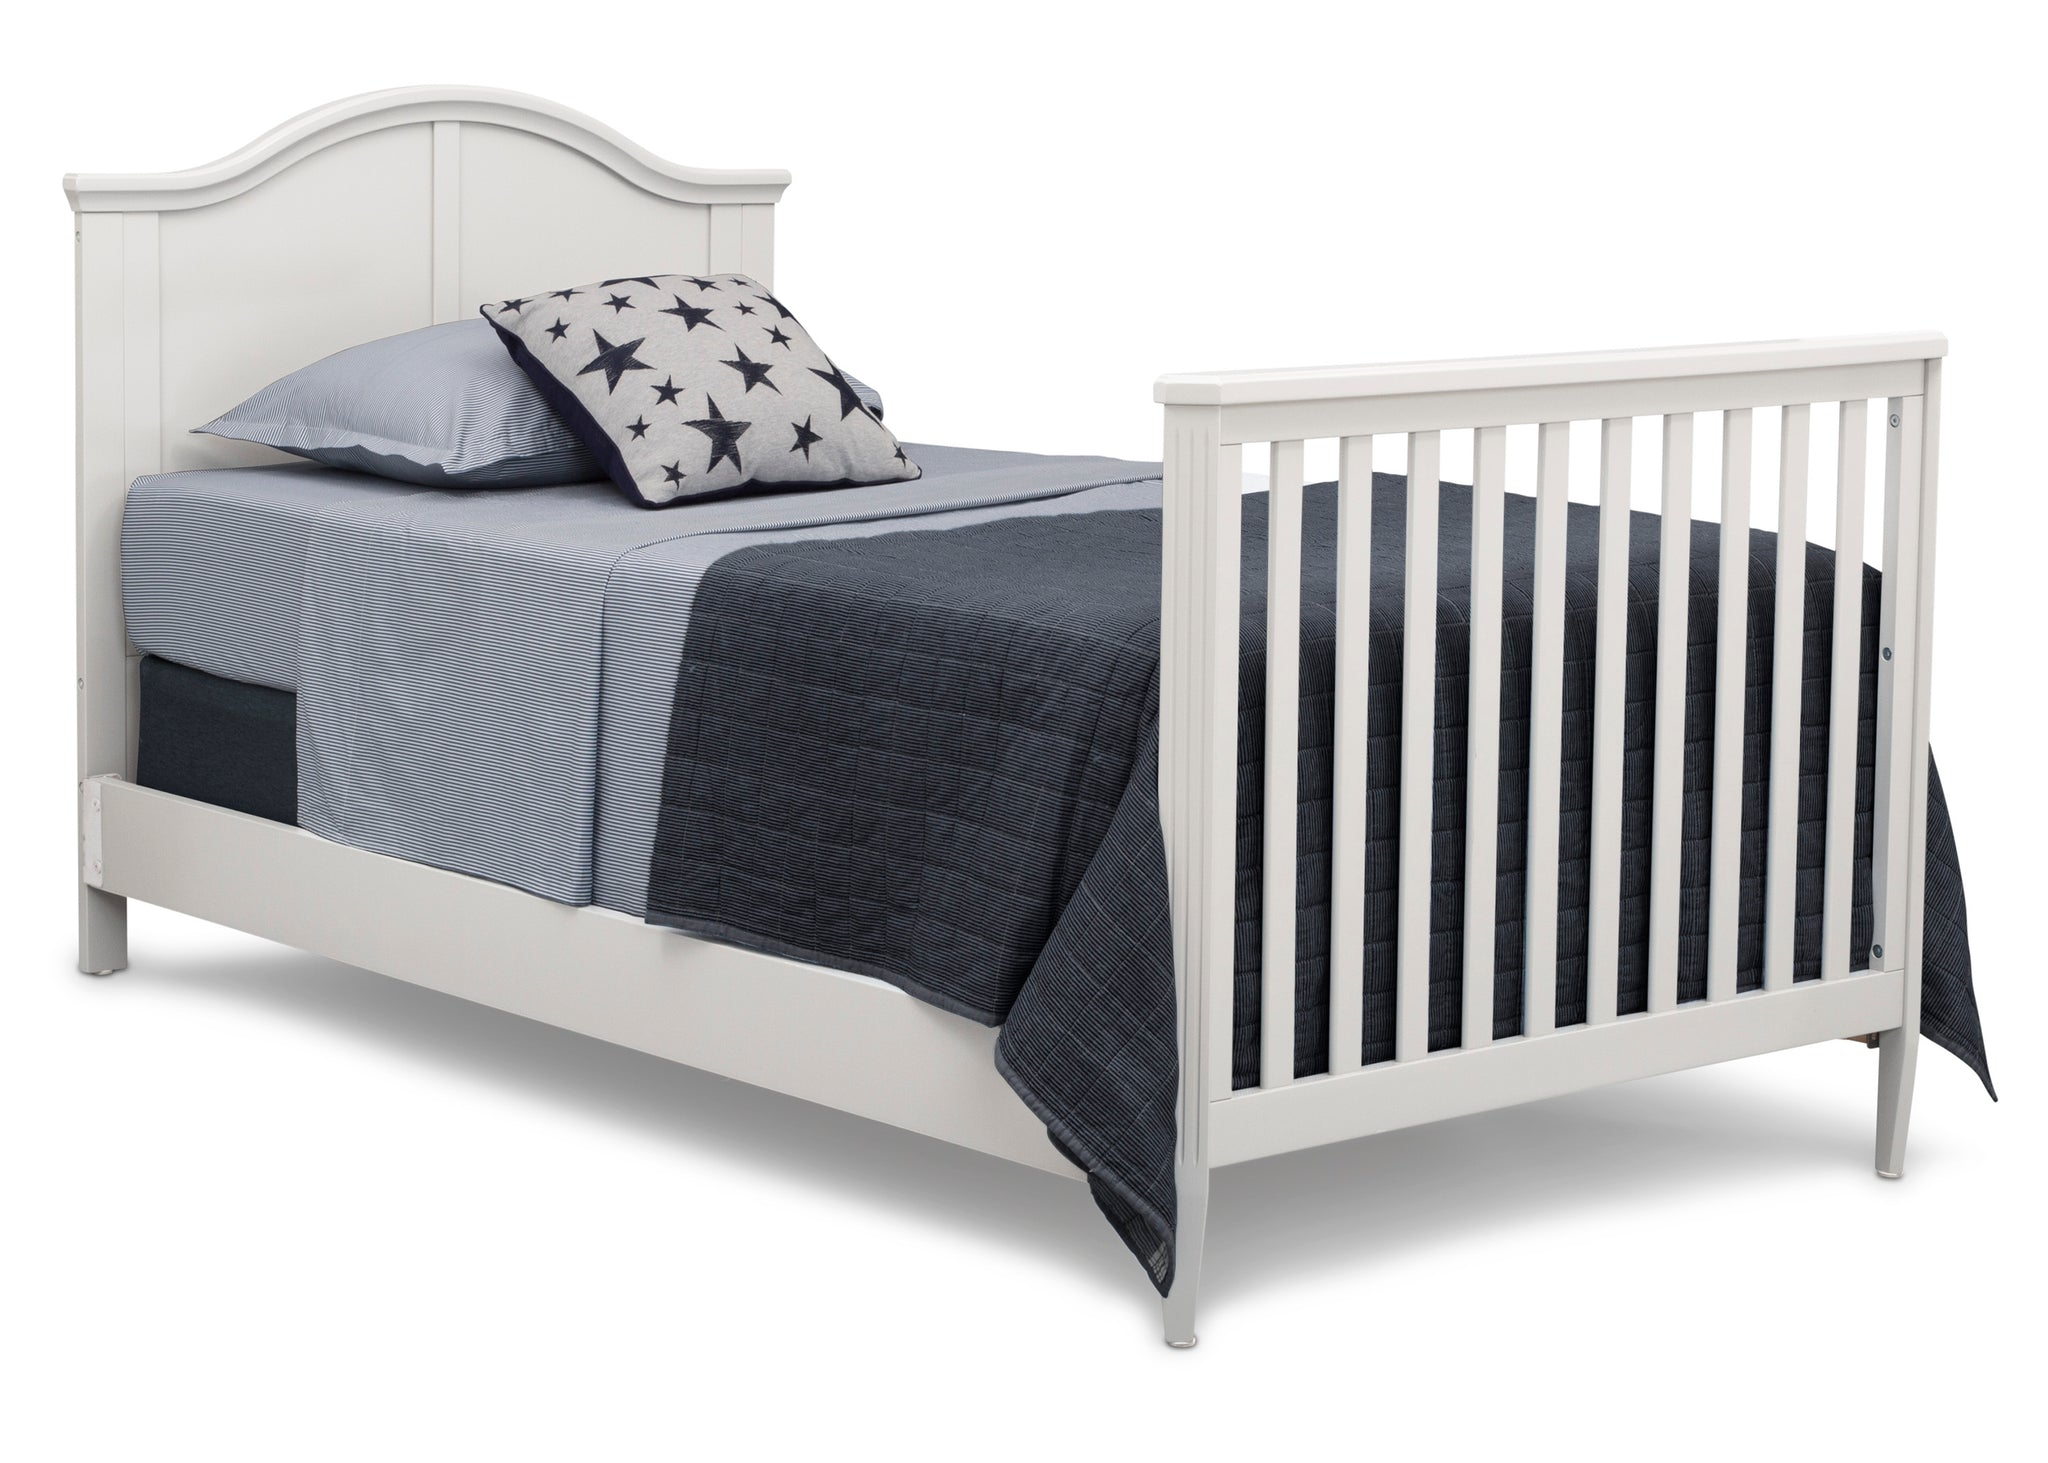 Delta Children Bianca White (130) Mini Convertible Baby Crib with Mattress and 2 Sheets Right Twin Bed Silo View